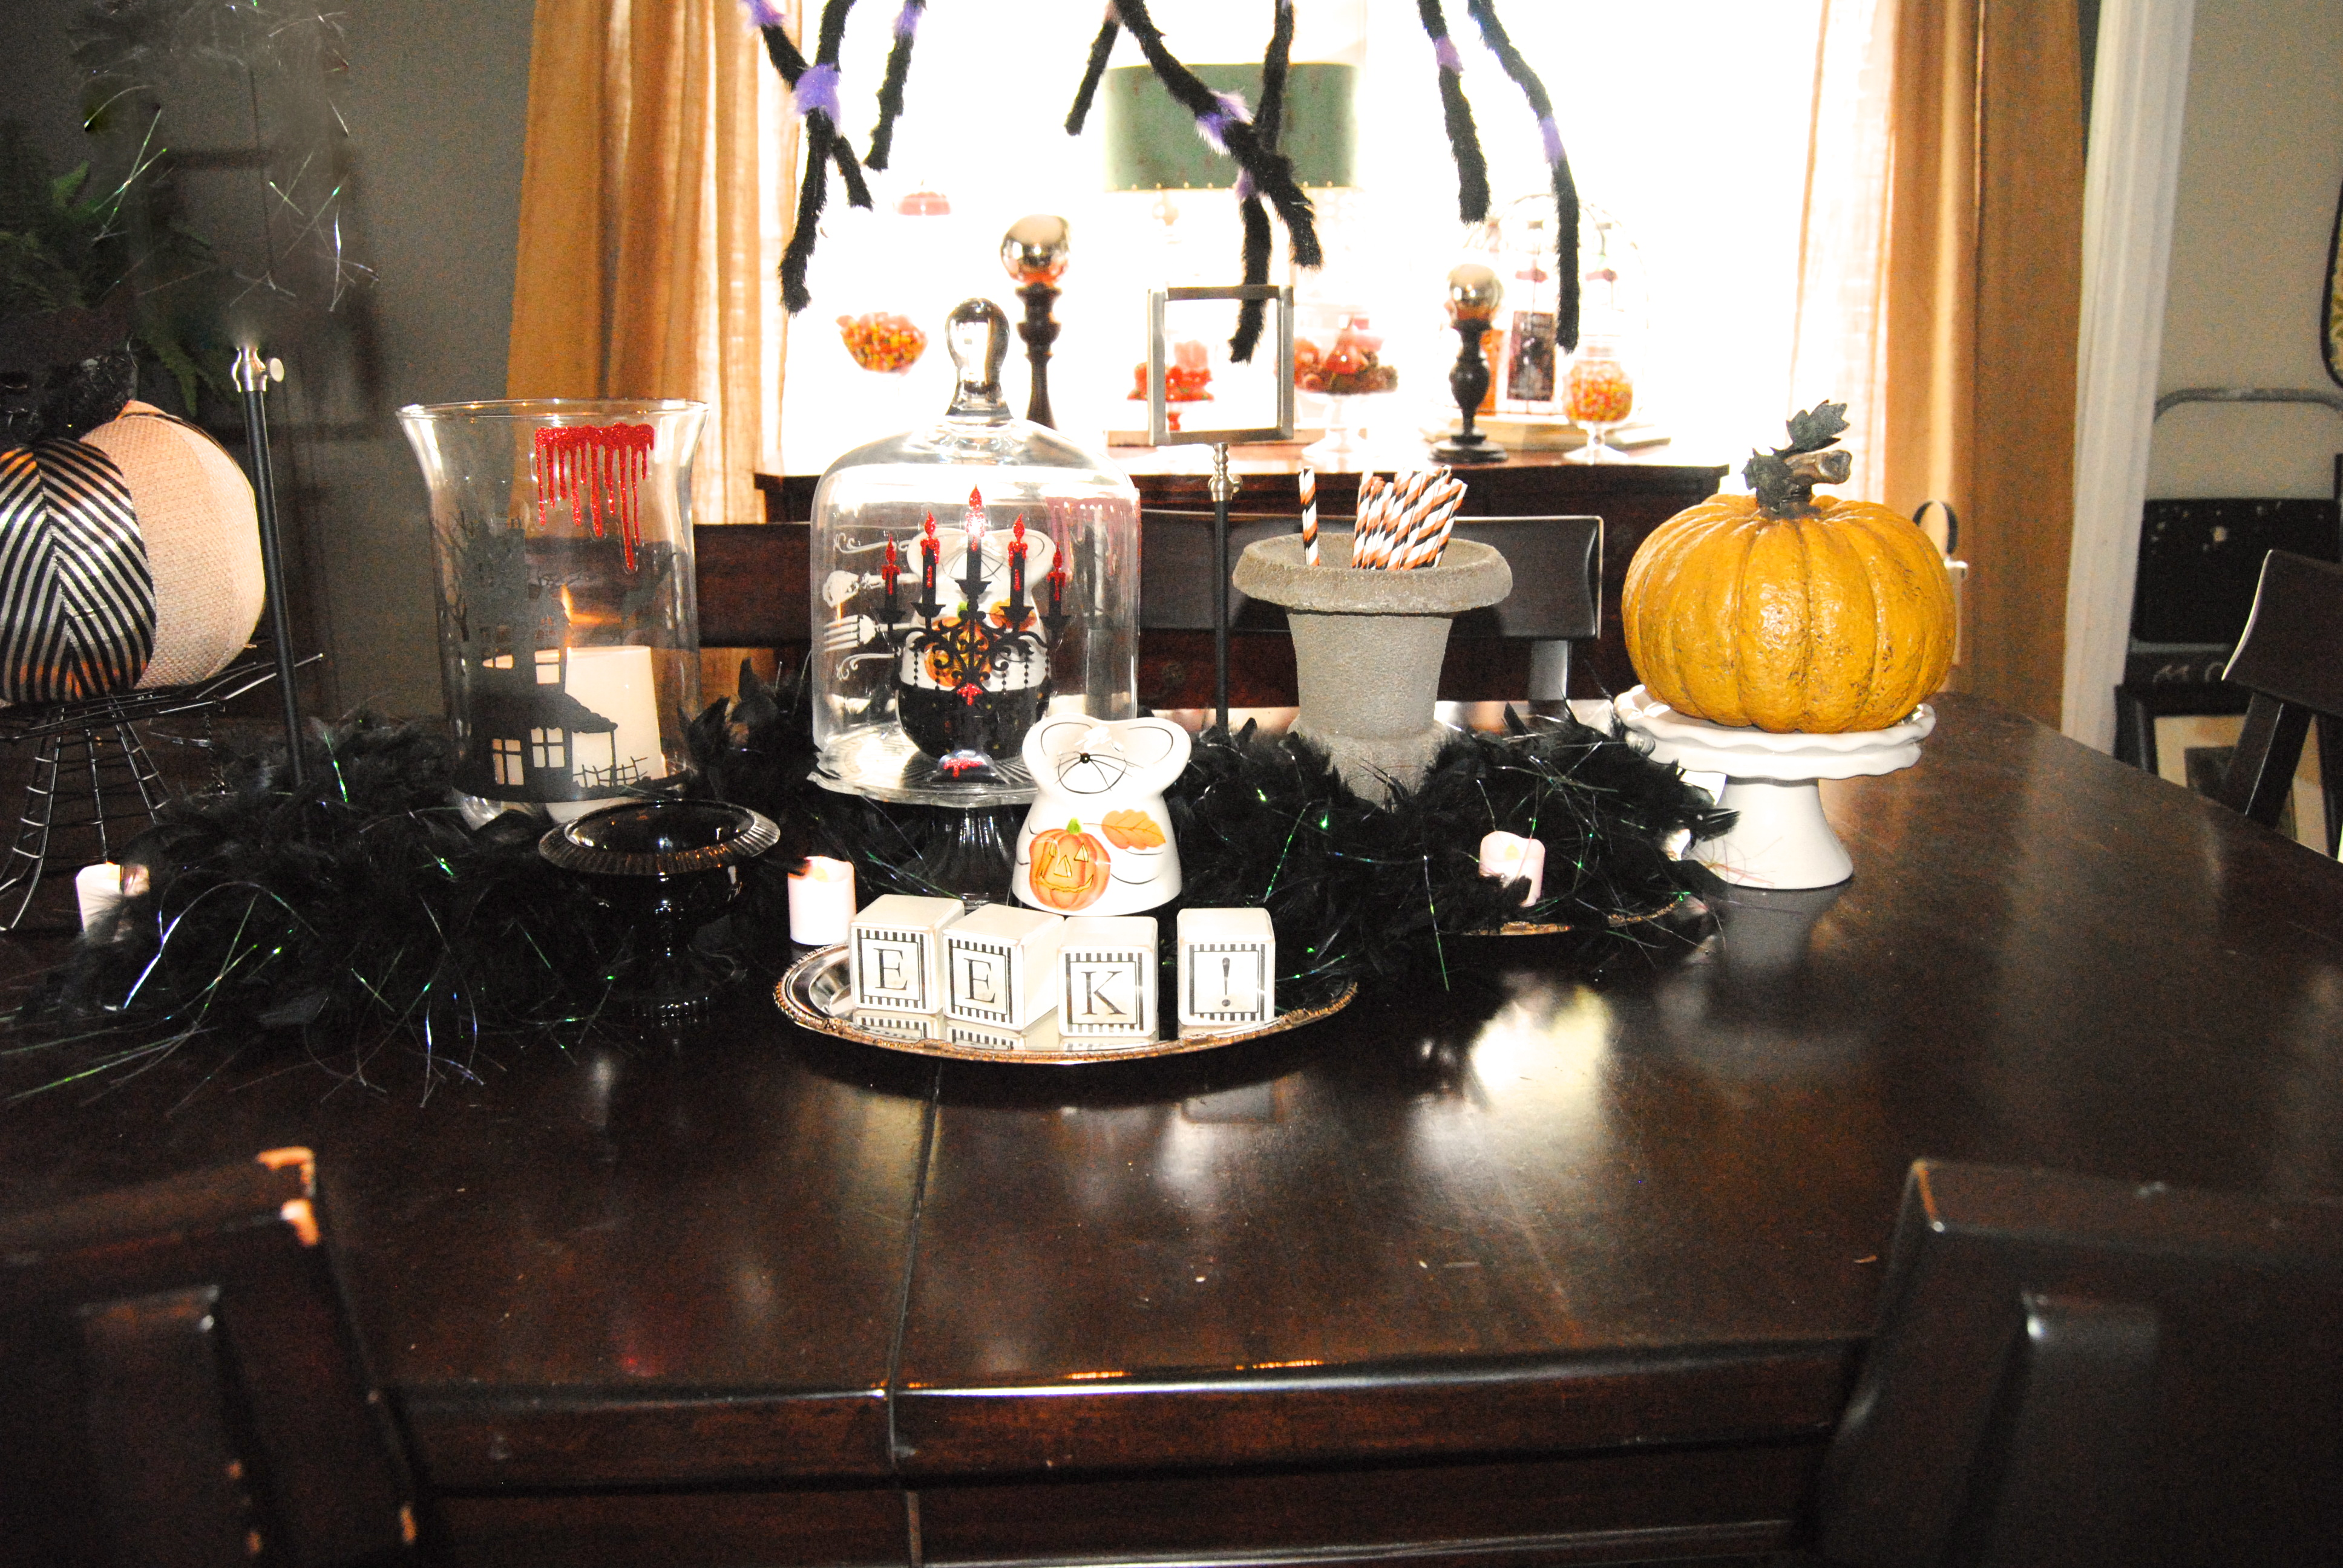 Scary Halloween Dining Room Decor  Our Cape on Cabot Road